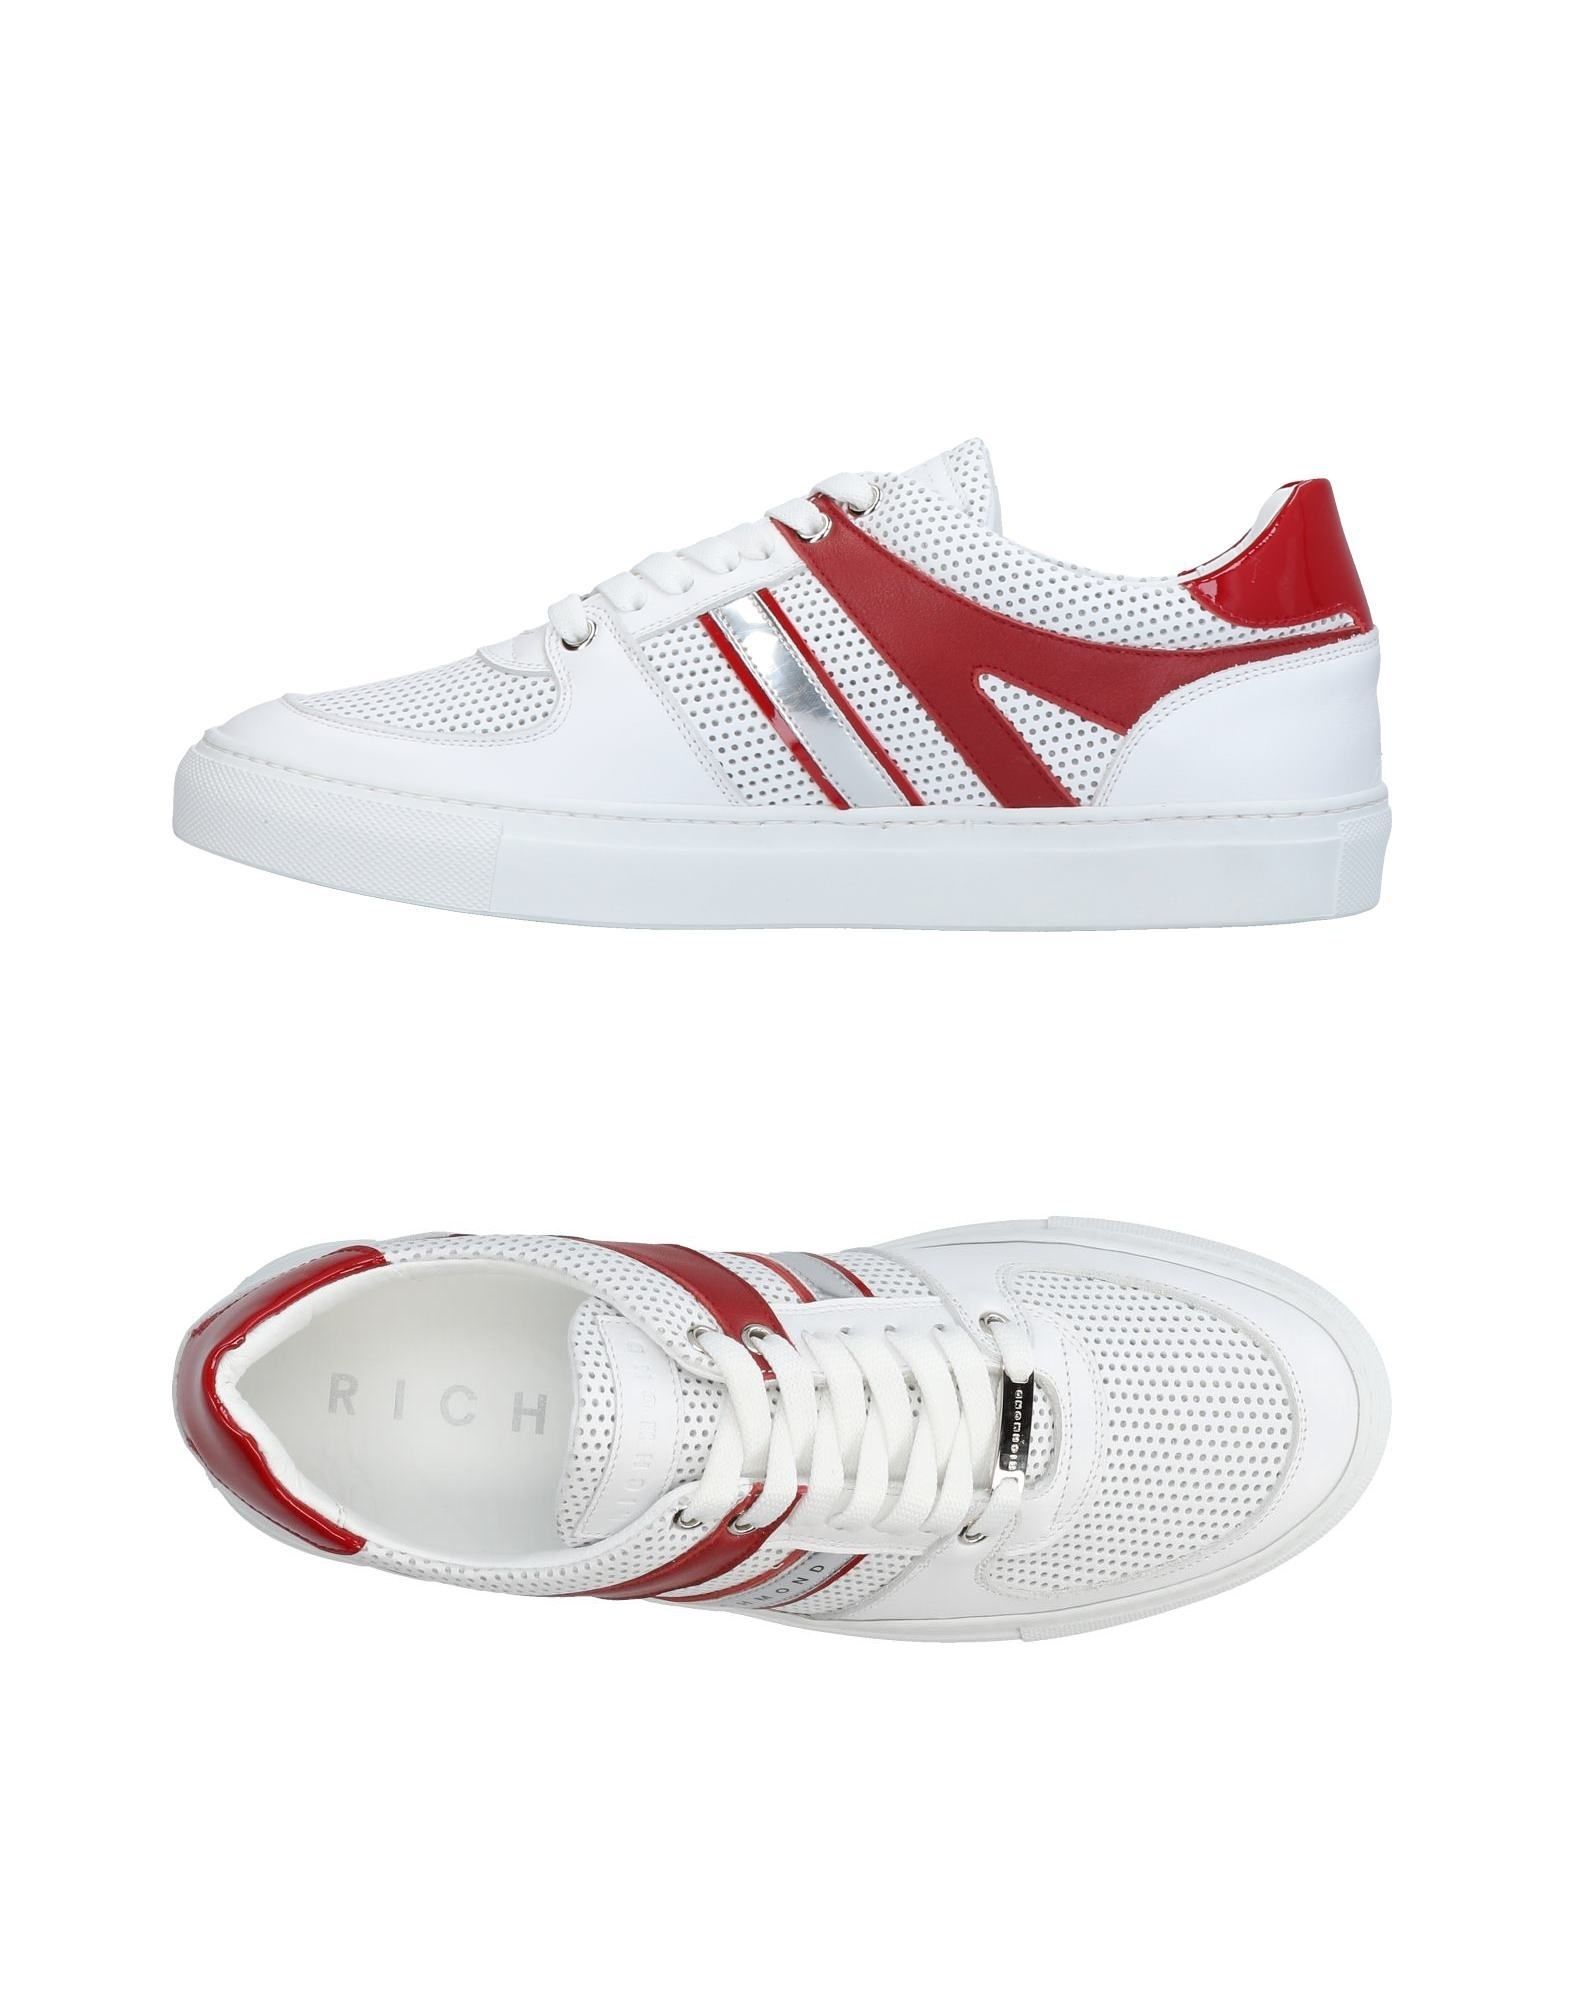 Moda Sneakers Richmond Uomo - 11425041FM